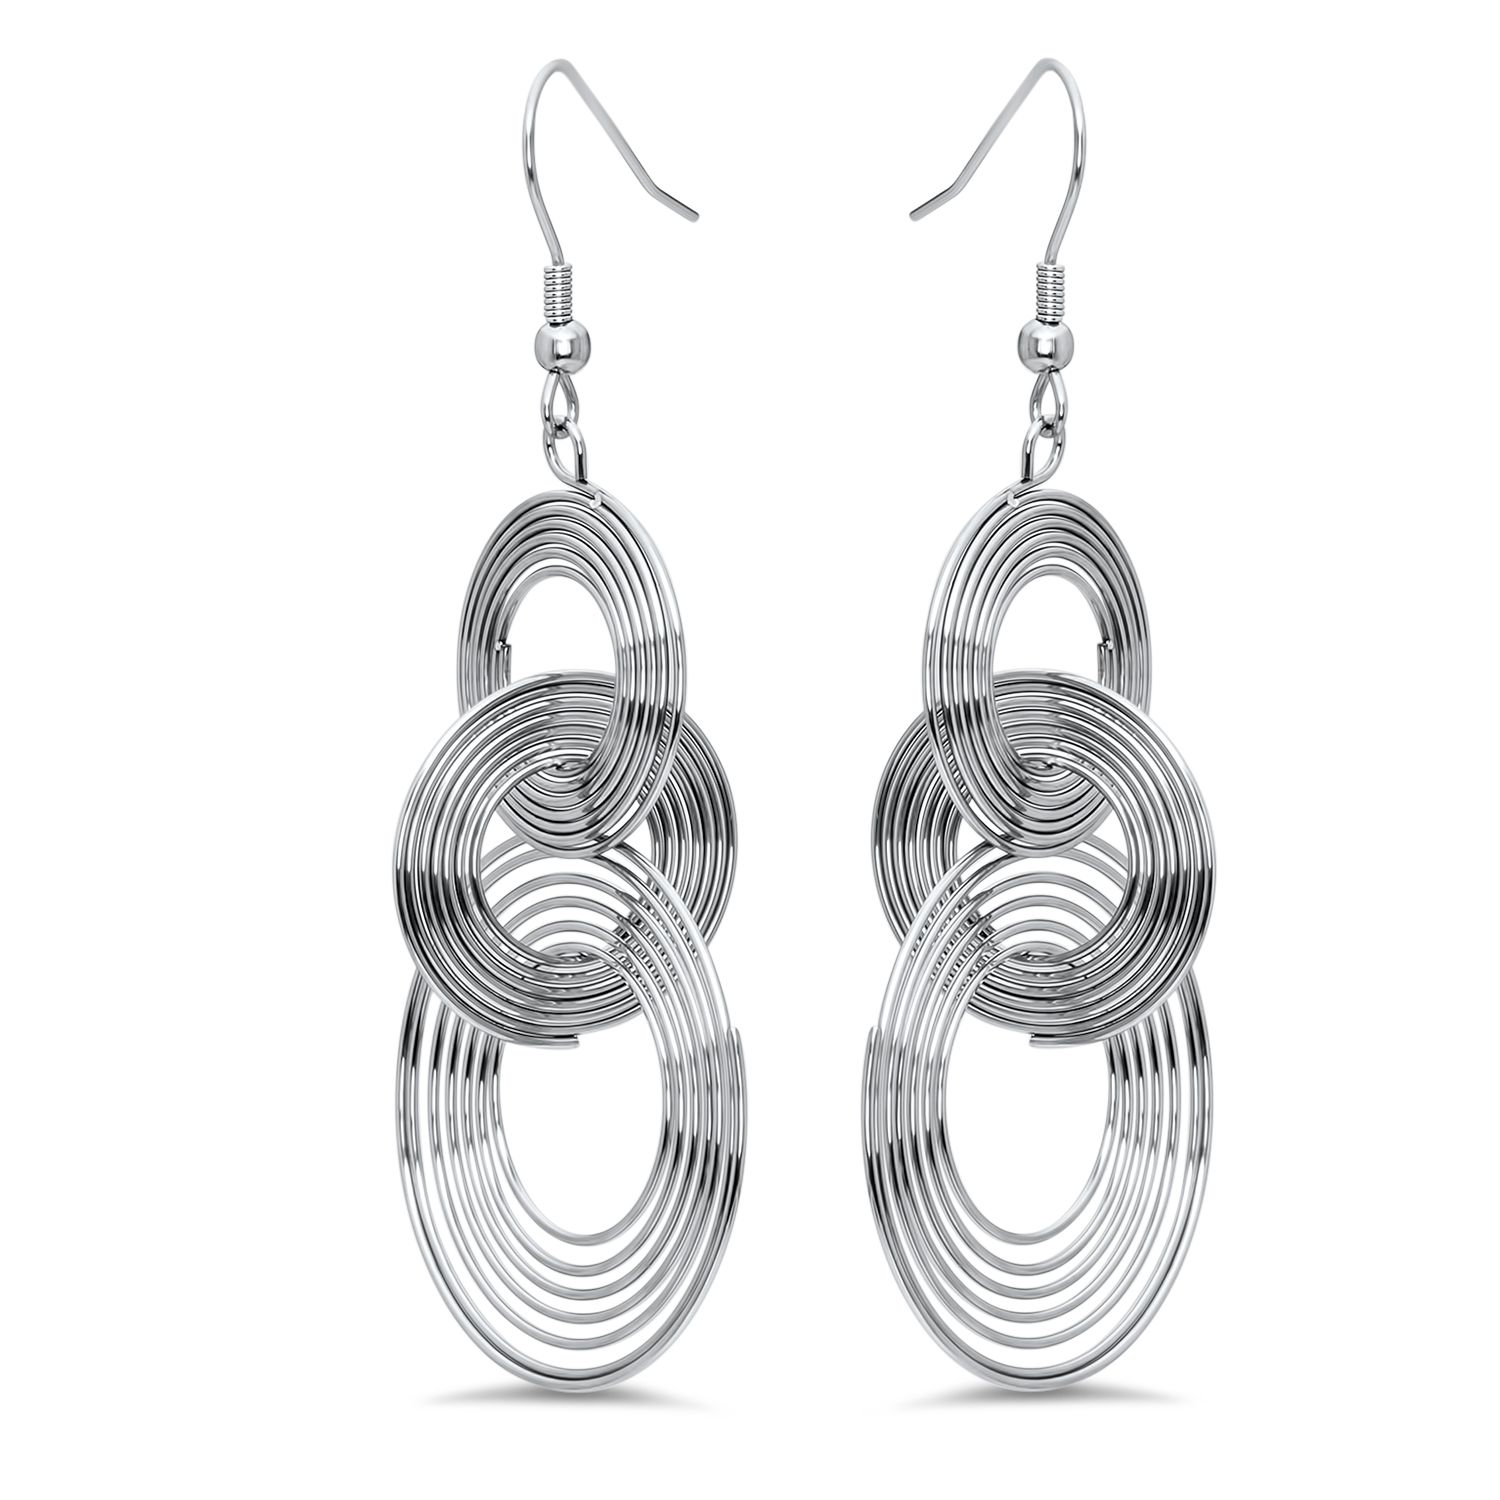 Stainless Steel Multiple Circle Dangle Earrings